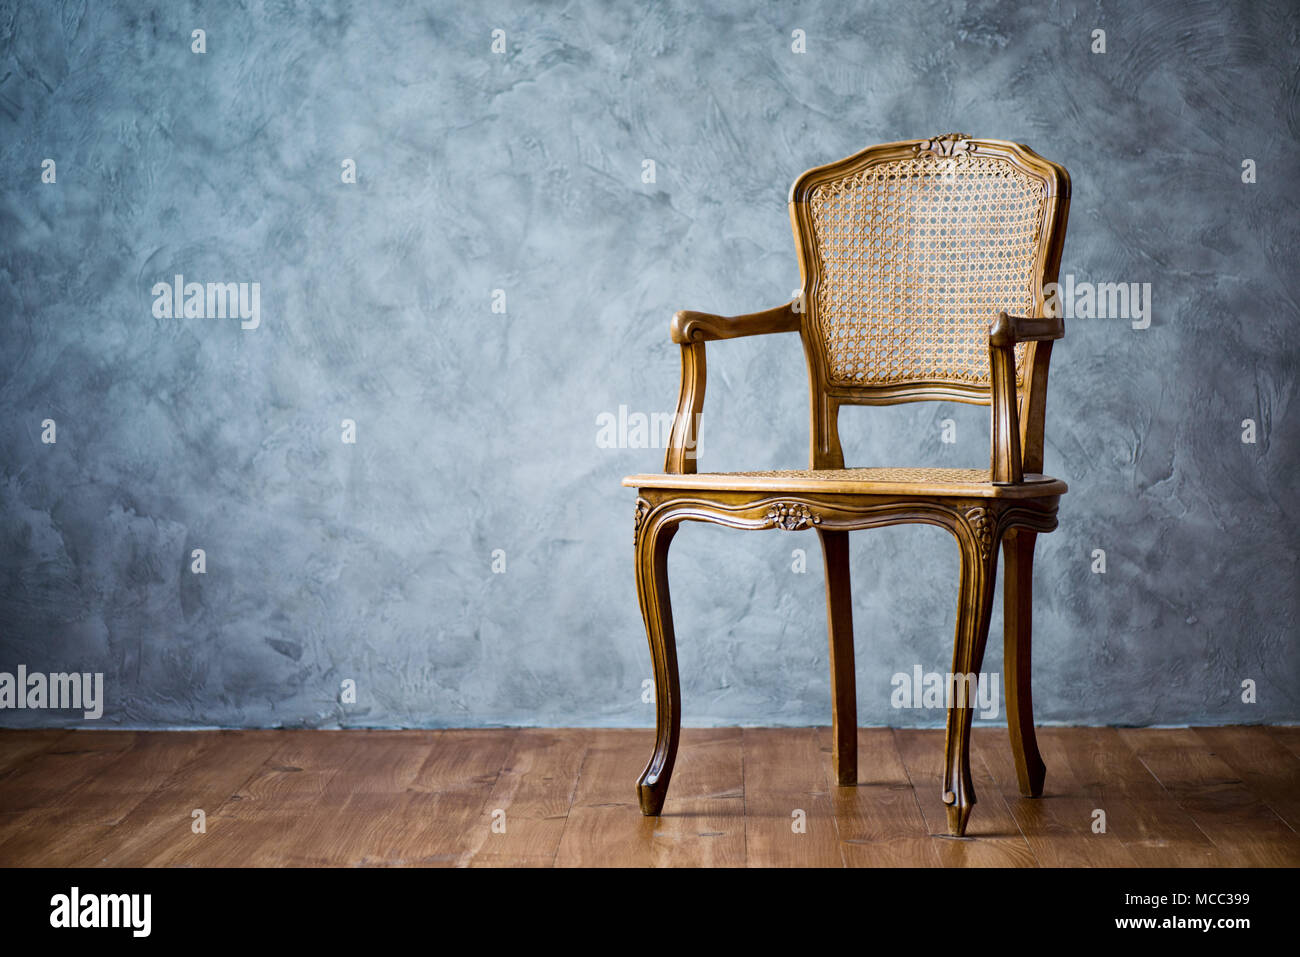 Vieille chaise sur un fond de mur gris Banque D\'Images, Photo Stock ...